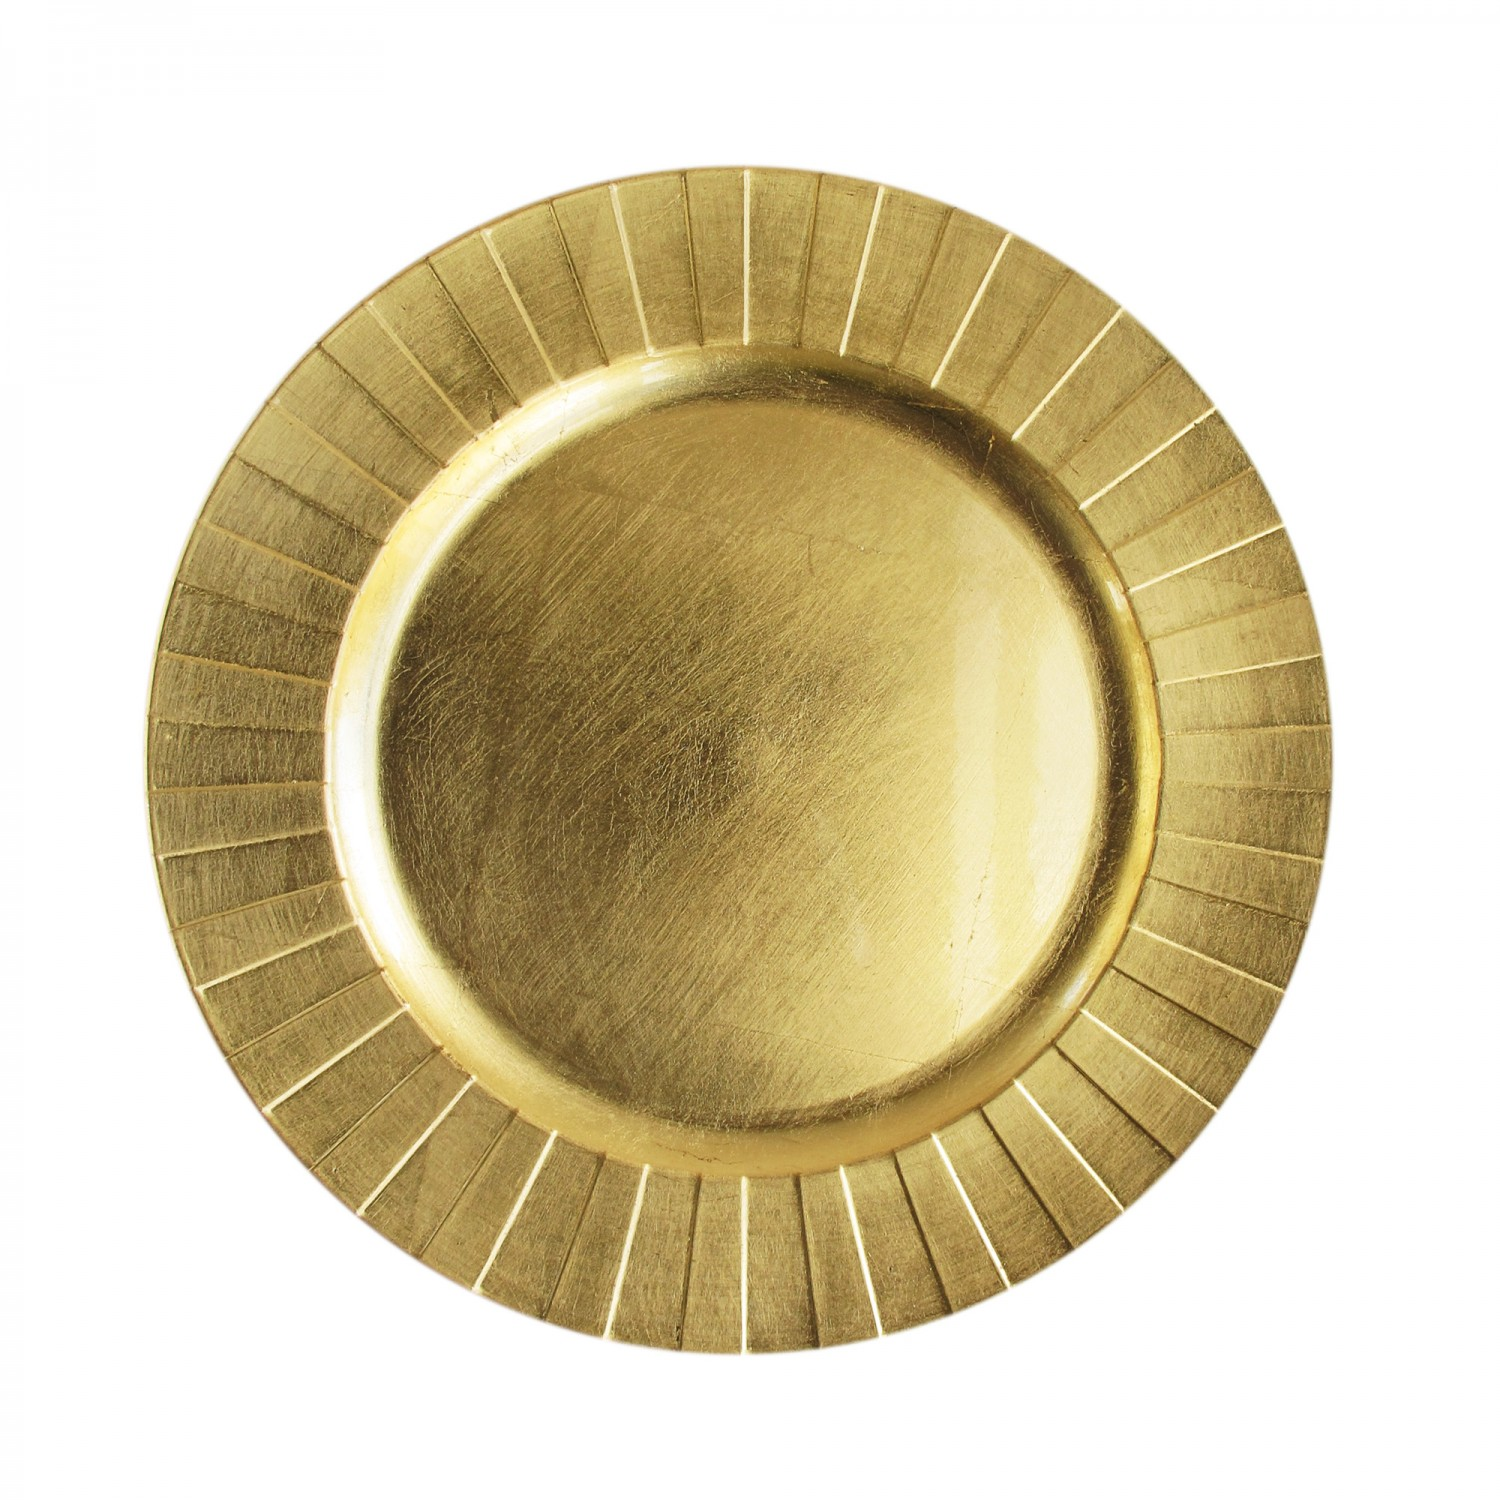 The Jay Companies 1182772 Round Gold Accent Charger Plate 13""